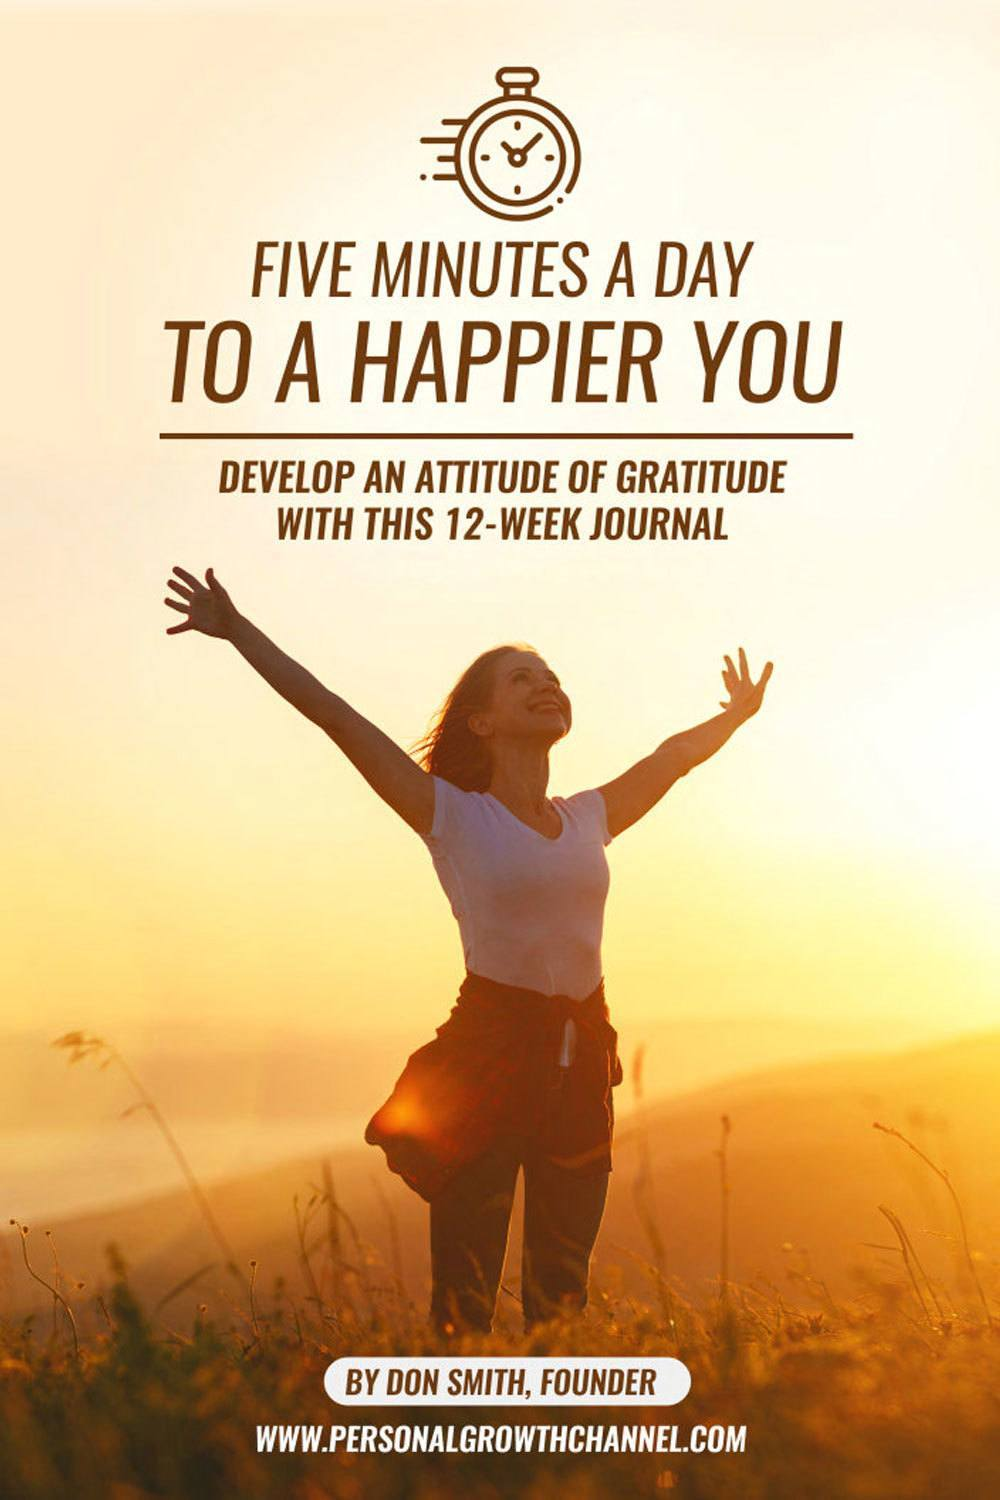 Five Minutes a Day to a Happier You: Develop an Attitude of Gratitude with this 12-Week Journal